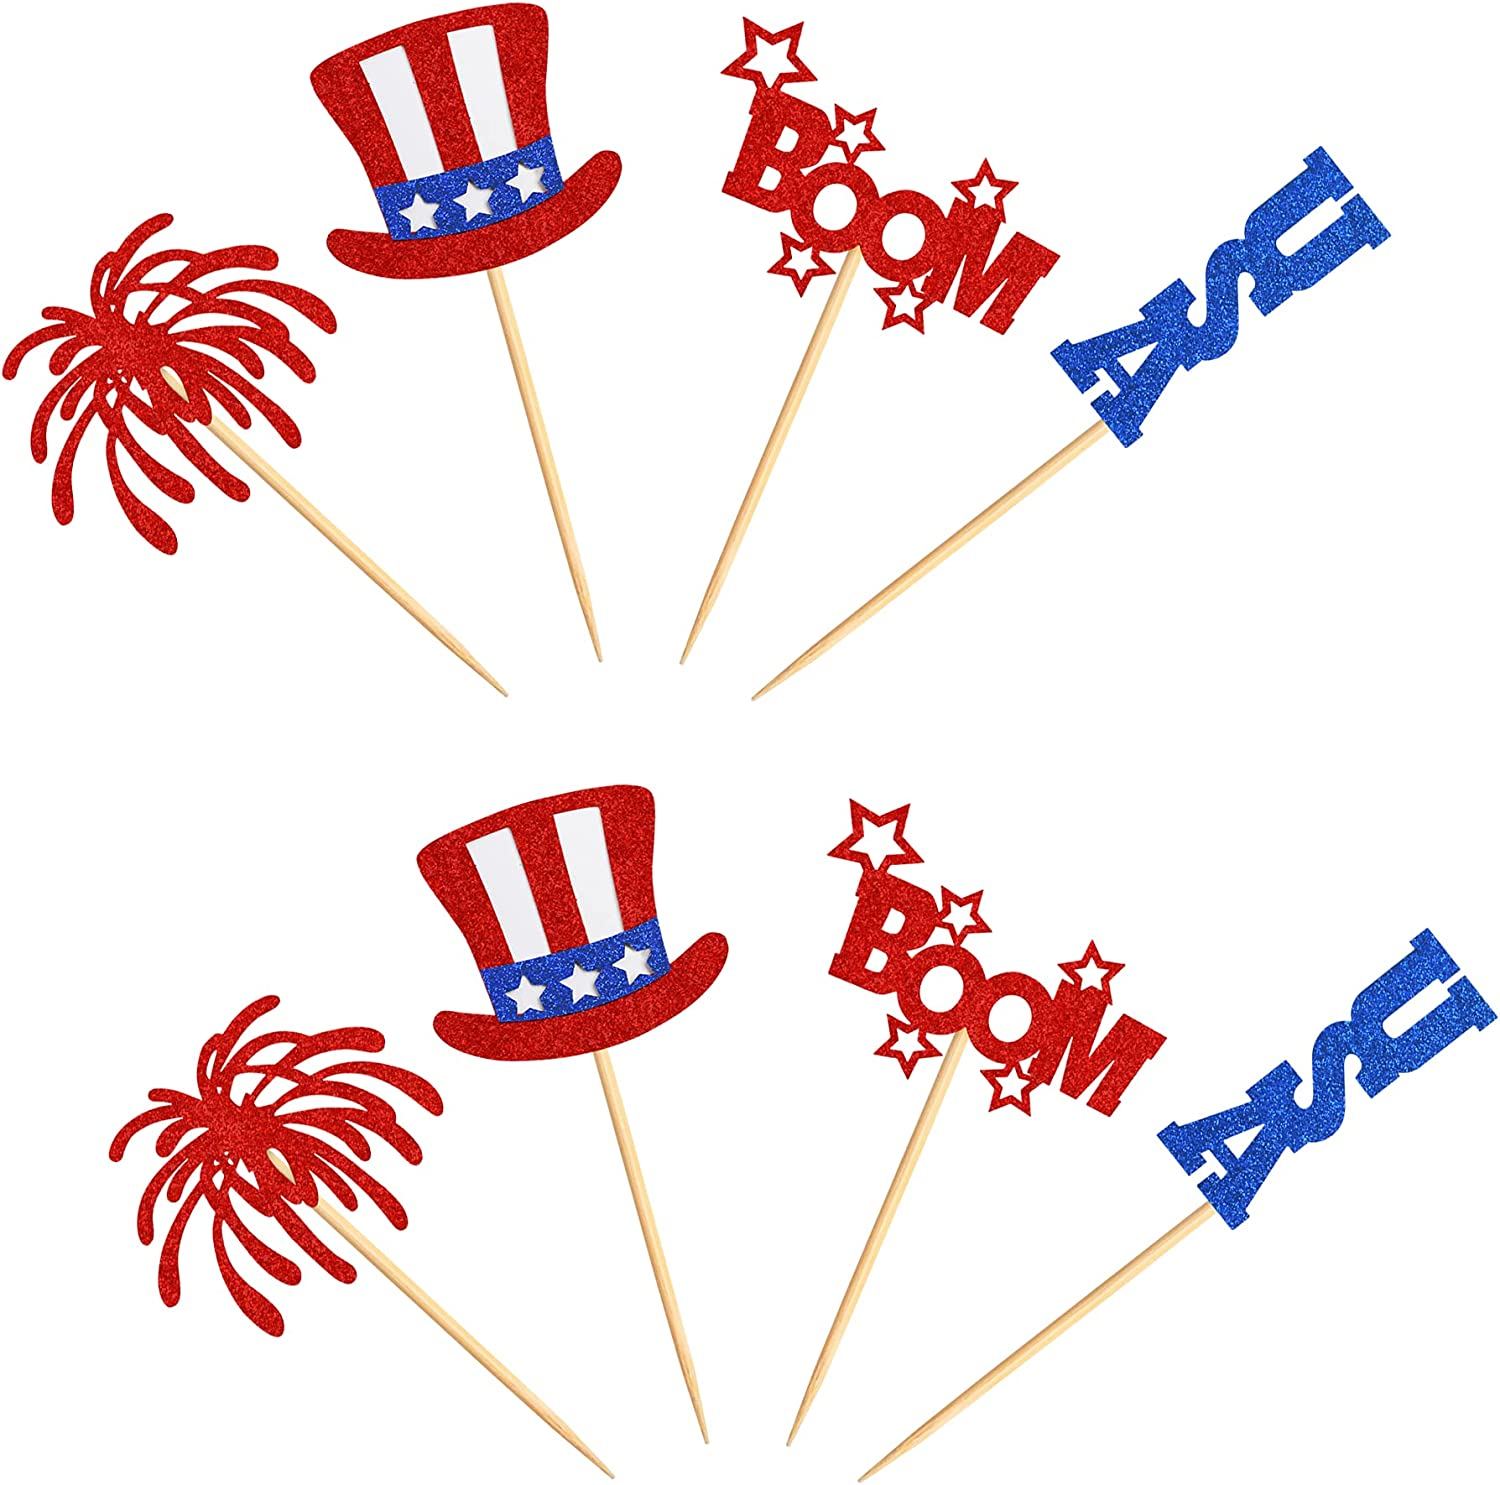 leisure 32 Pcs Independence Day Cupcake Toppers Glitter National ...